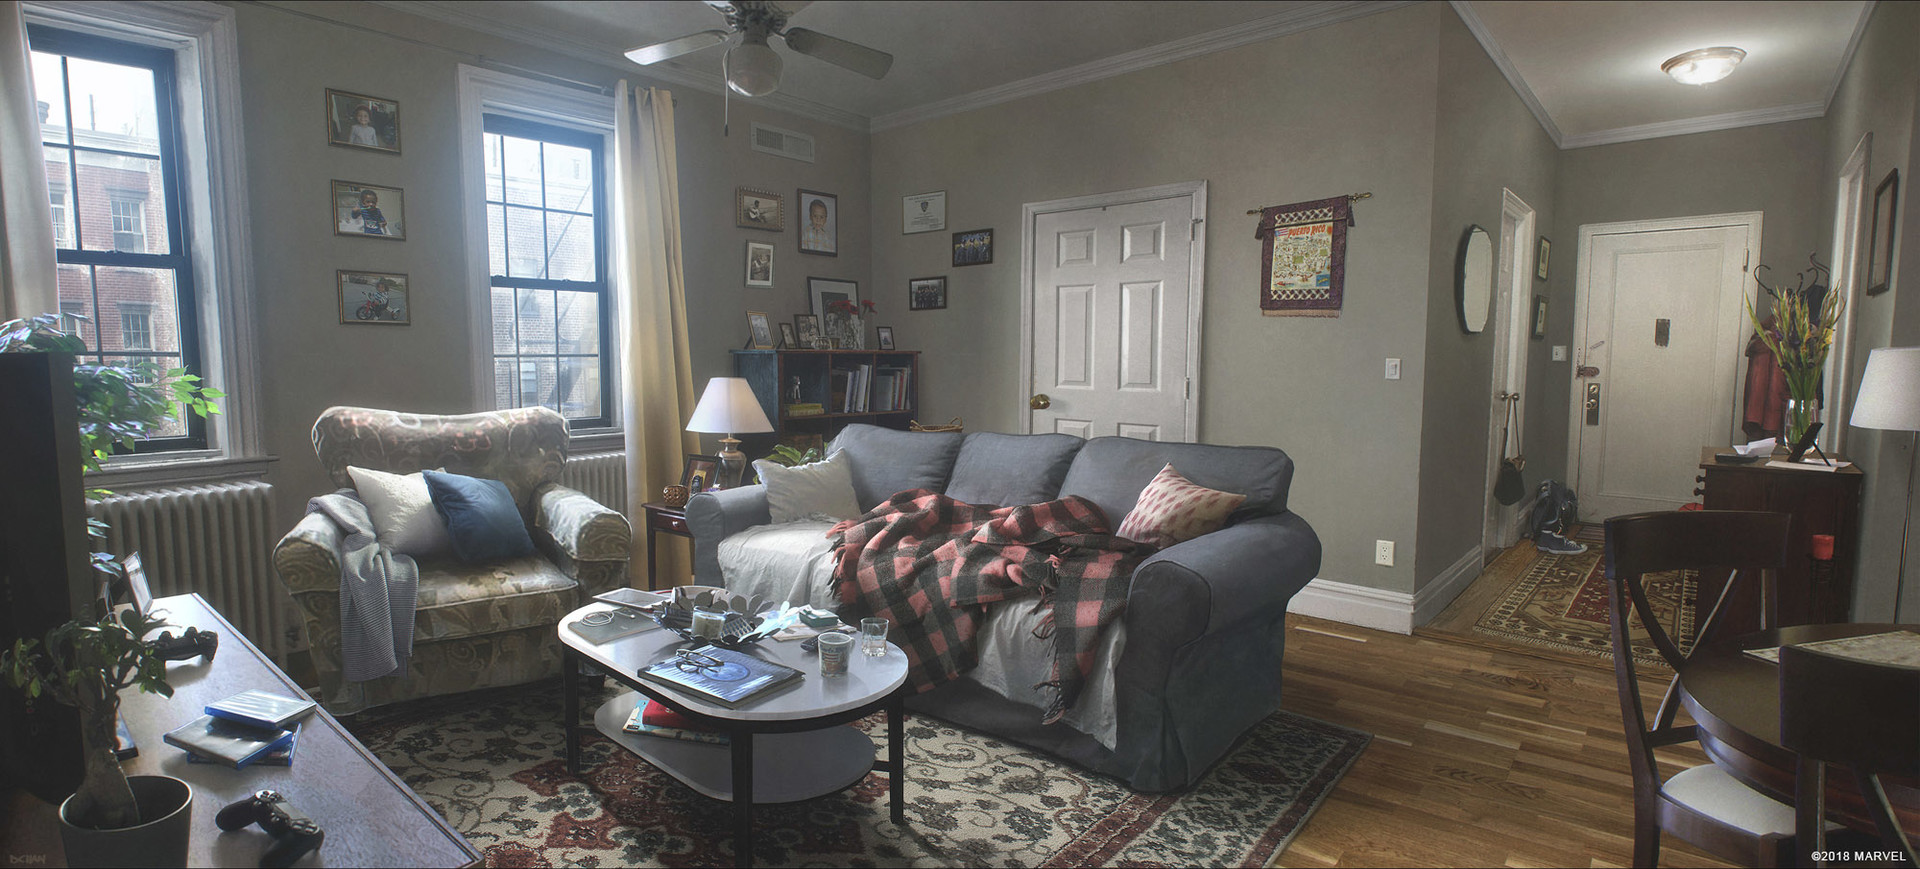 Miles and Rio Morales living room.